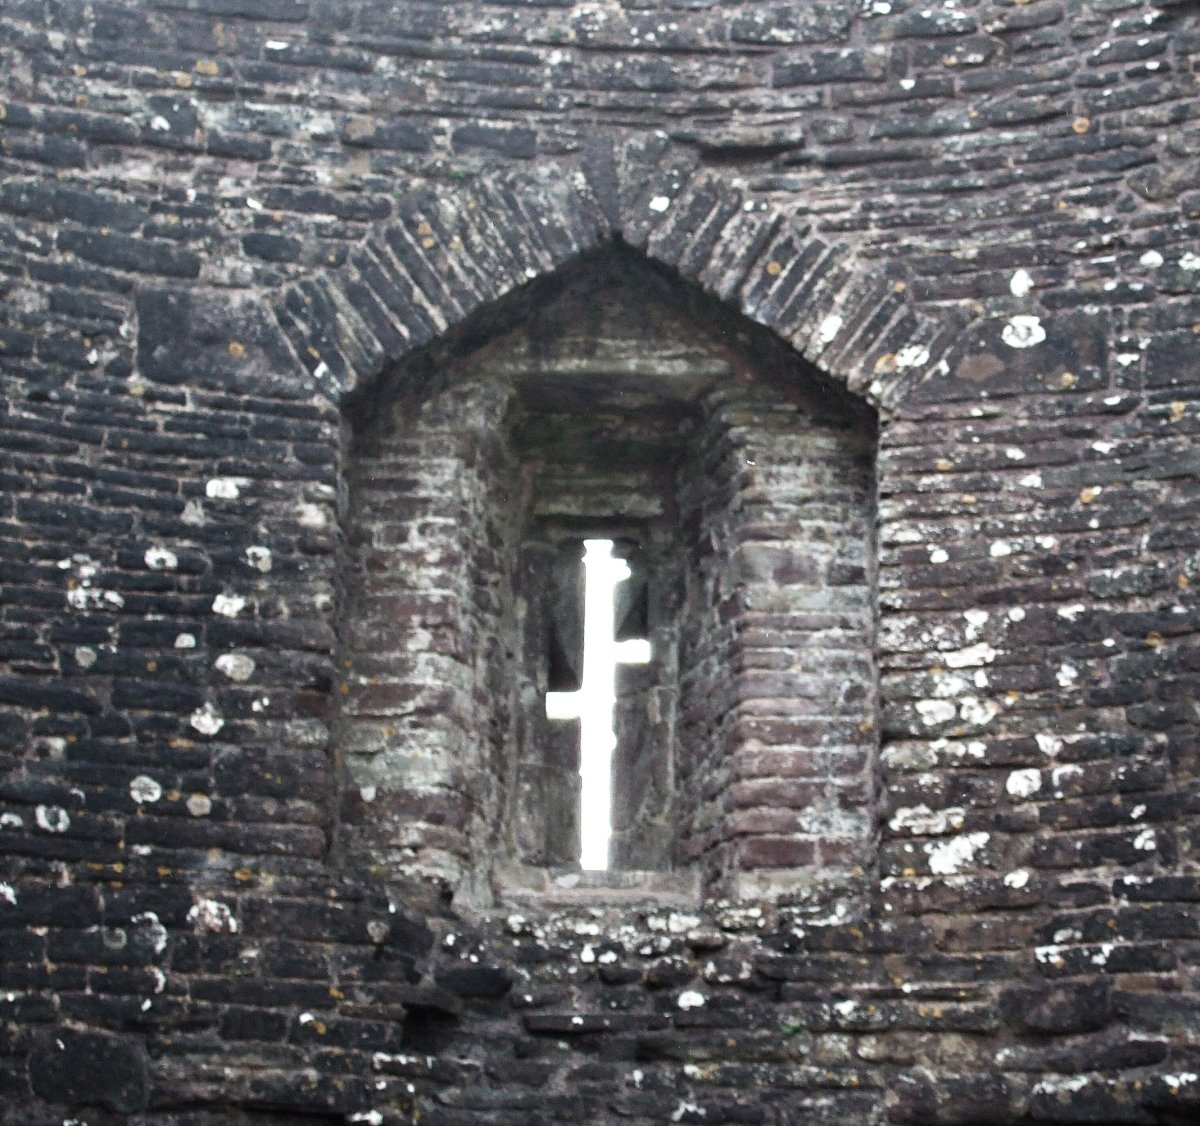 An arrowslit at White Castle, Wales.